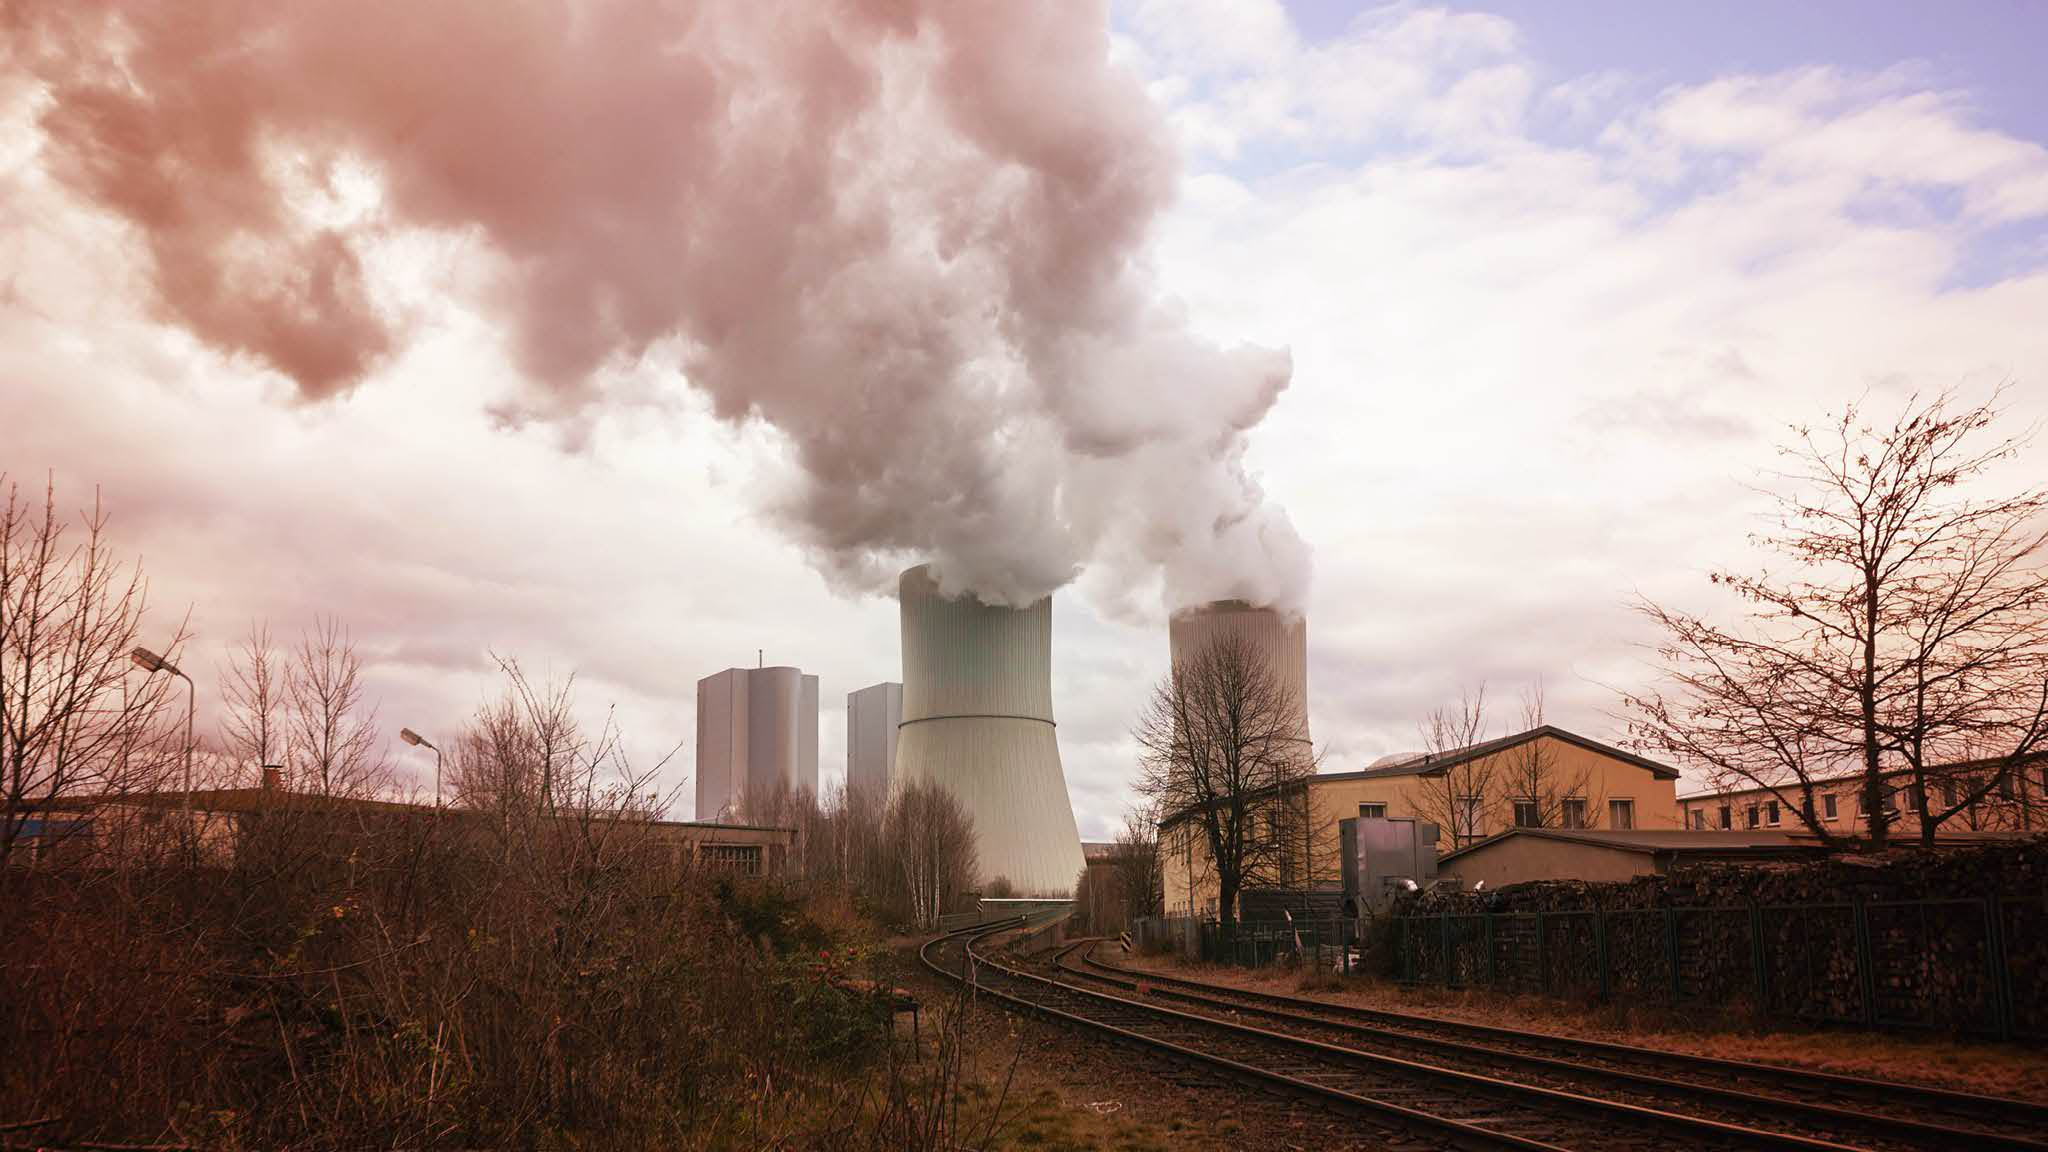 Villagers pin hopes on politics to wean Germany off coal